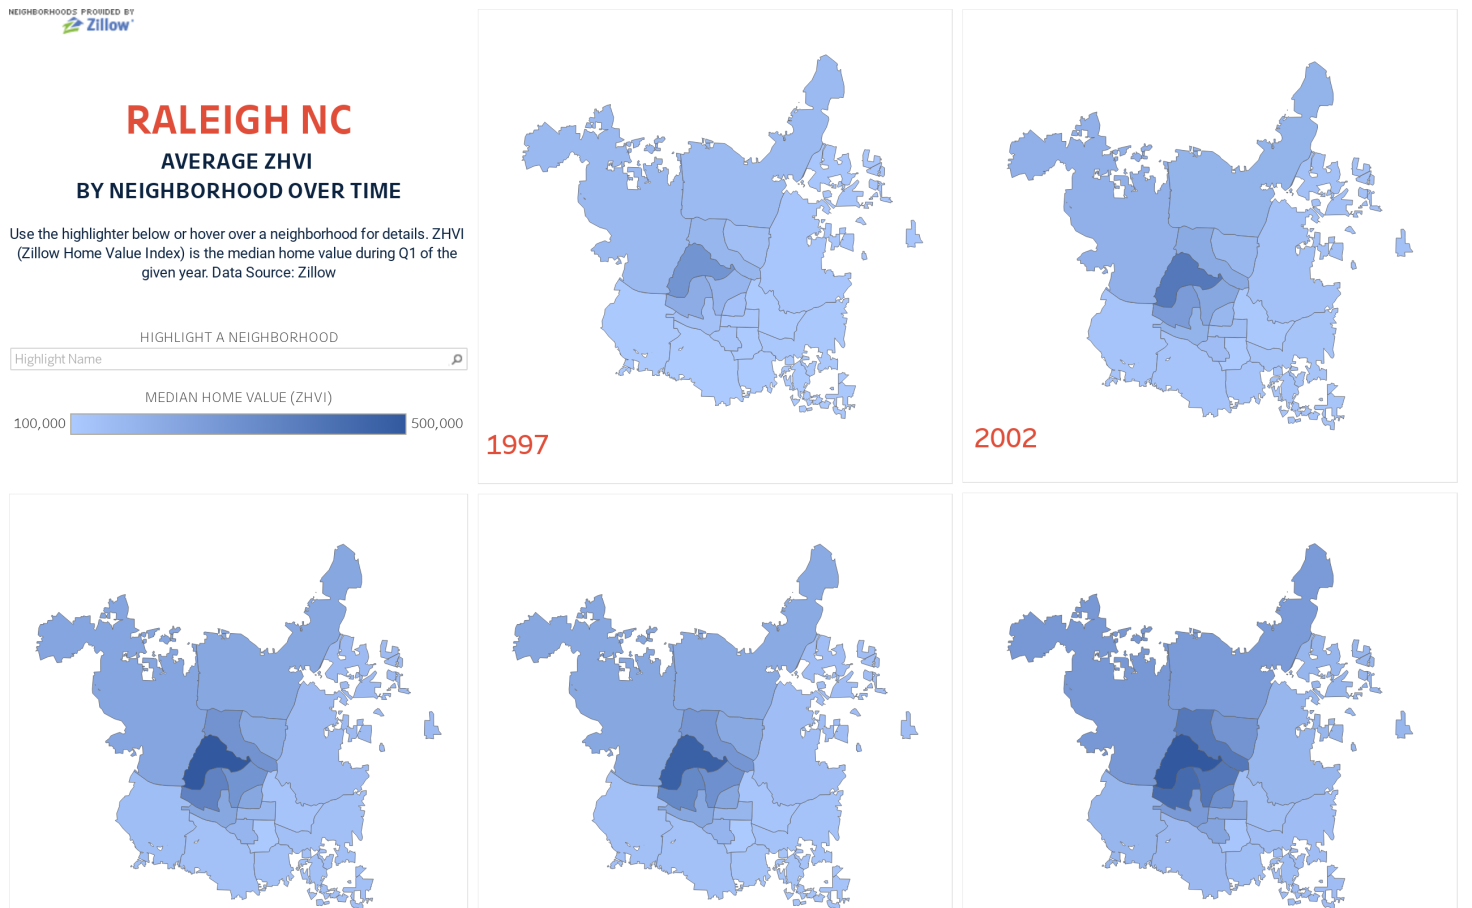 Raleigh, NC Median Home Values over Time - David Staples | Tableau on